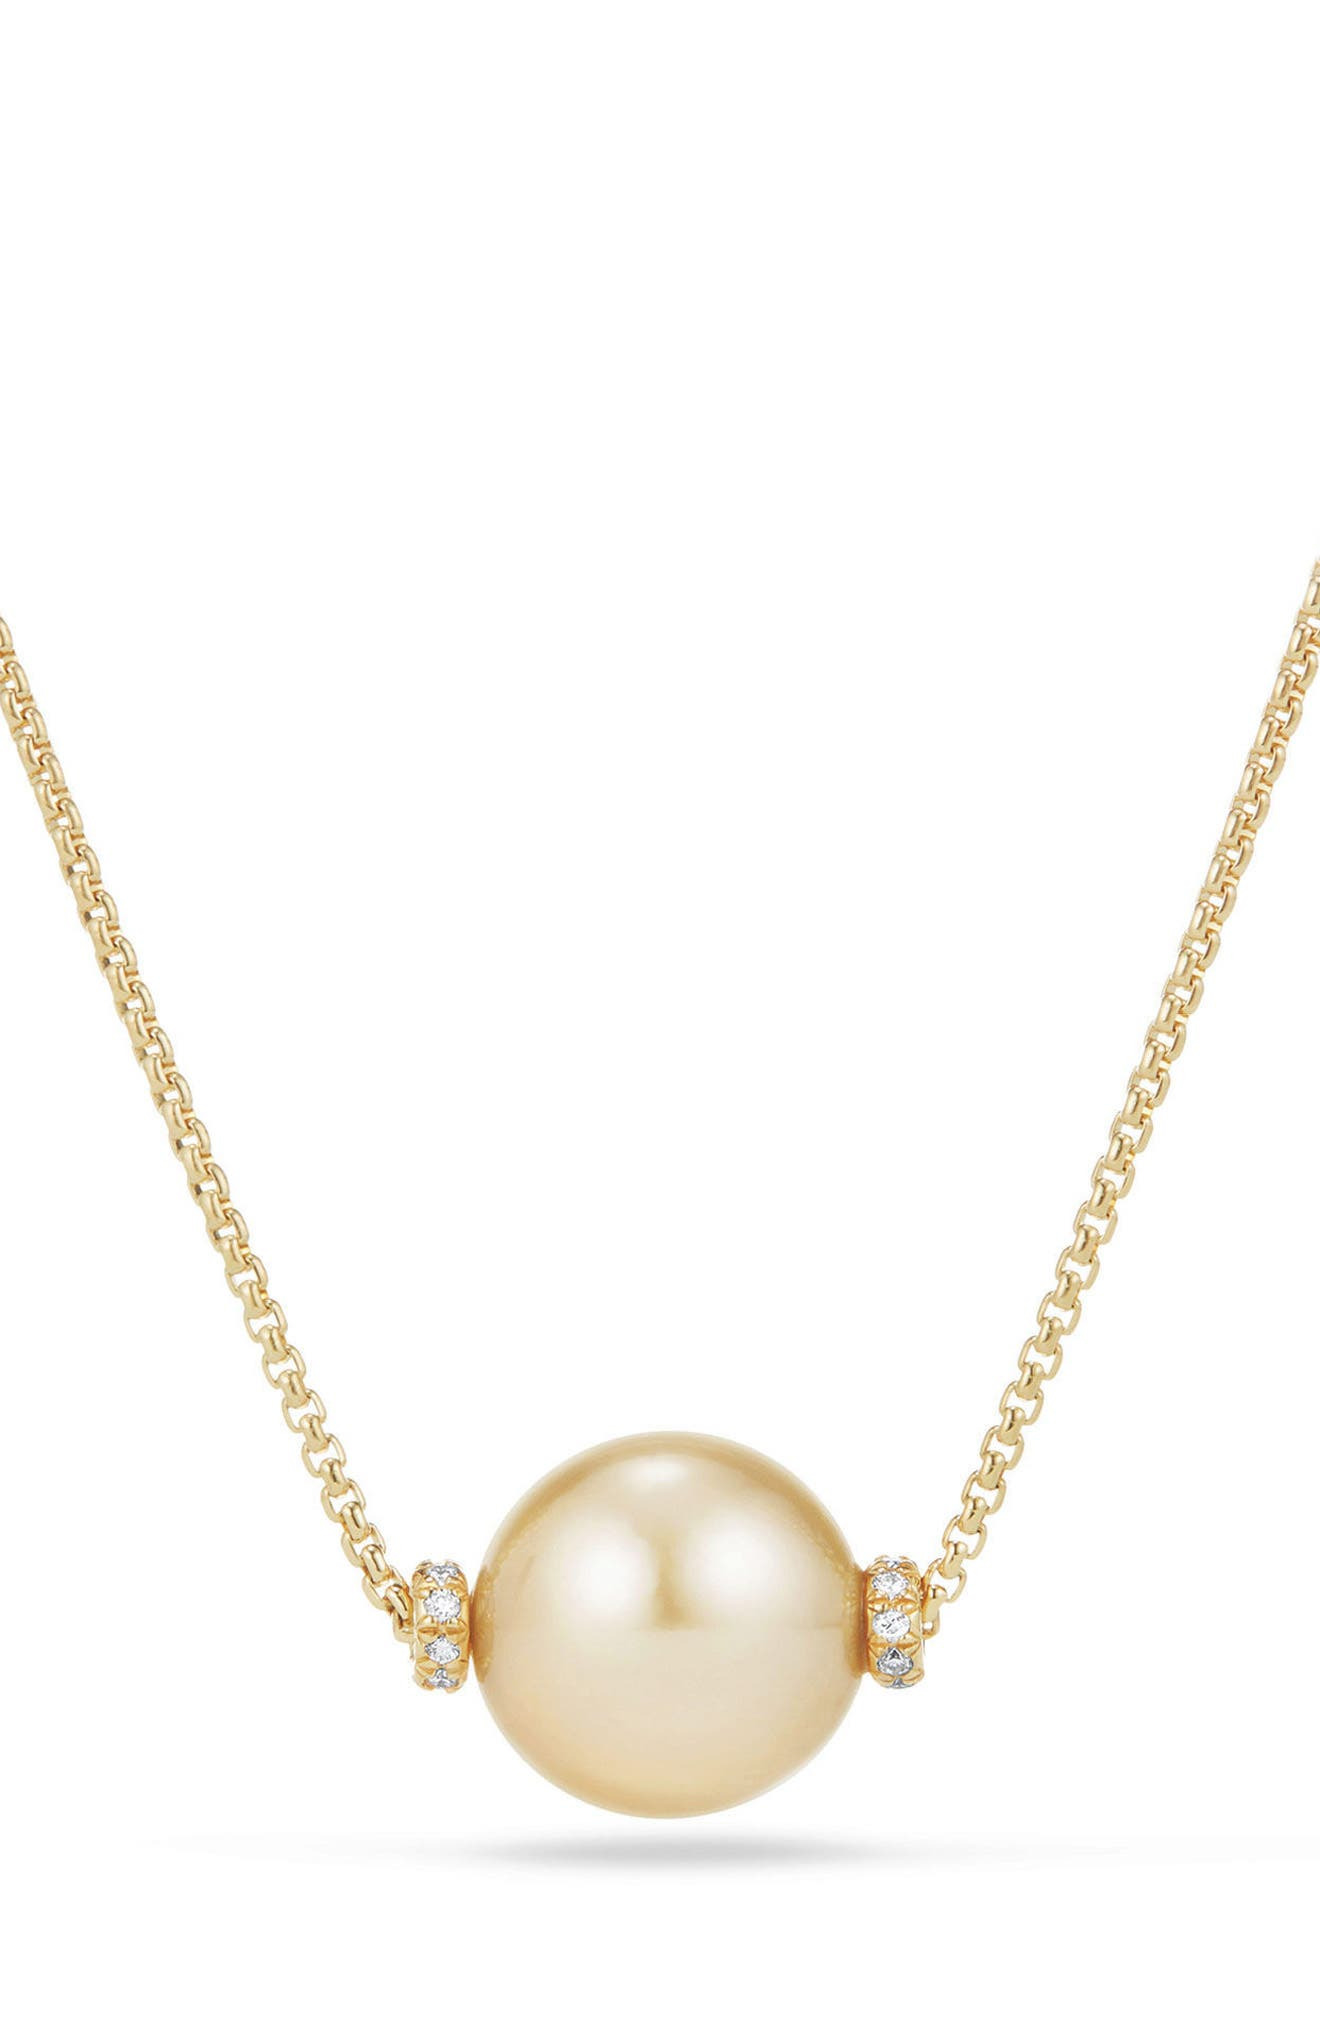 DAVID YURMAN, Solari Pearl Station Necklace, Main thumbnail 1, color, YELLOW GOLD/ SOUTH SEA YELLOW